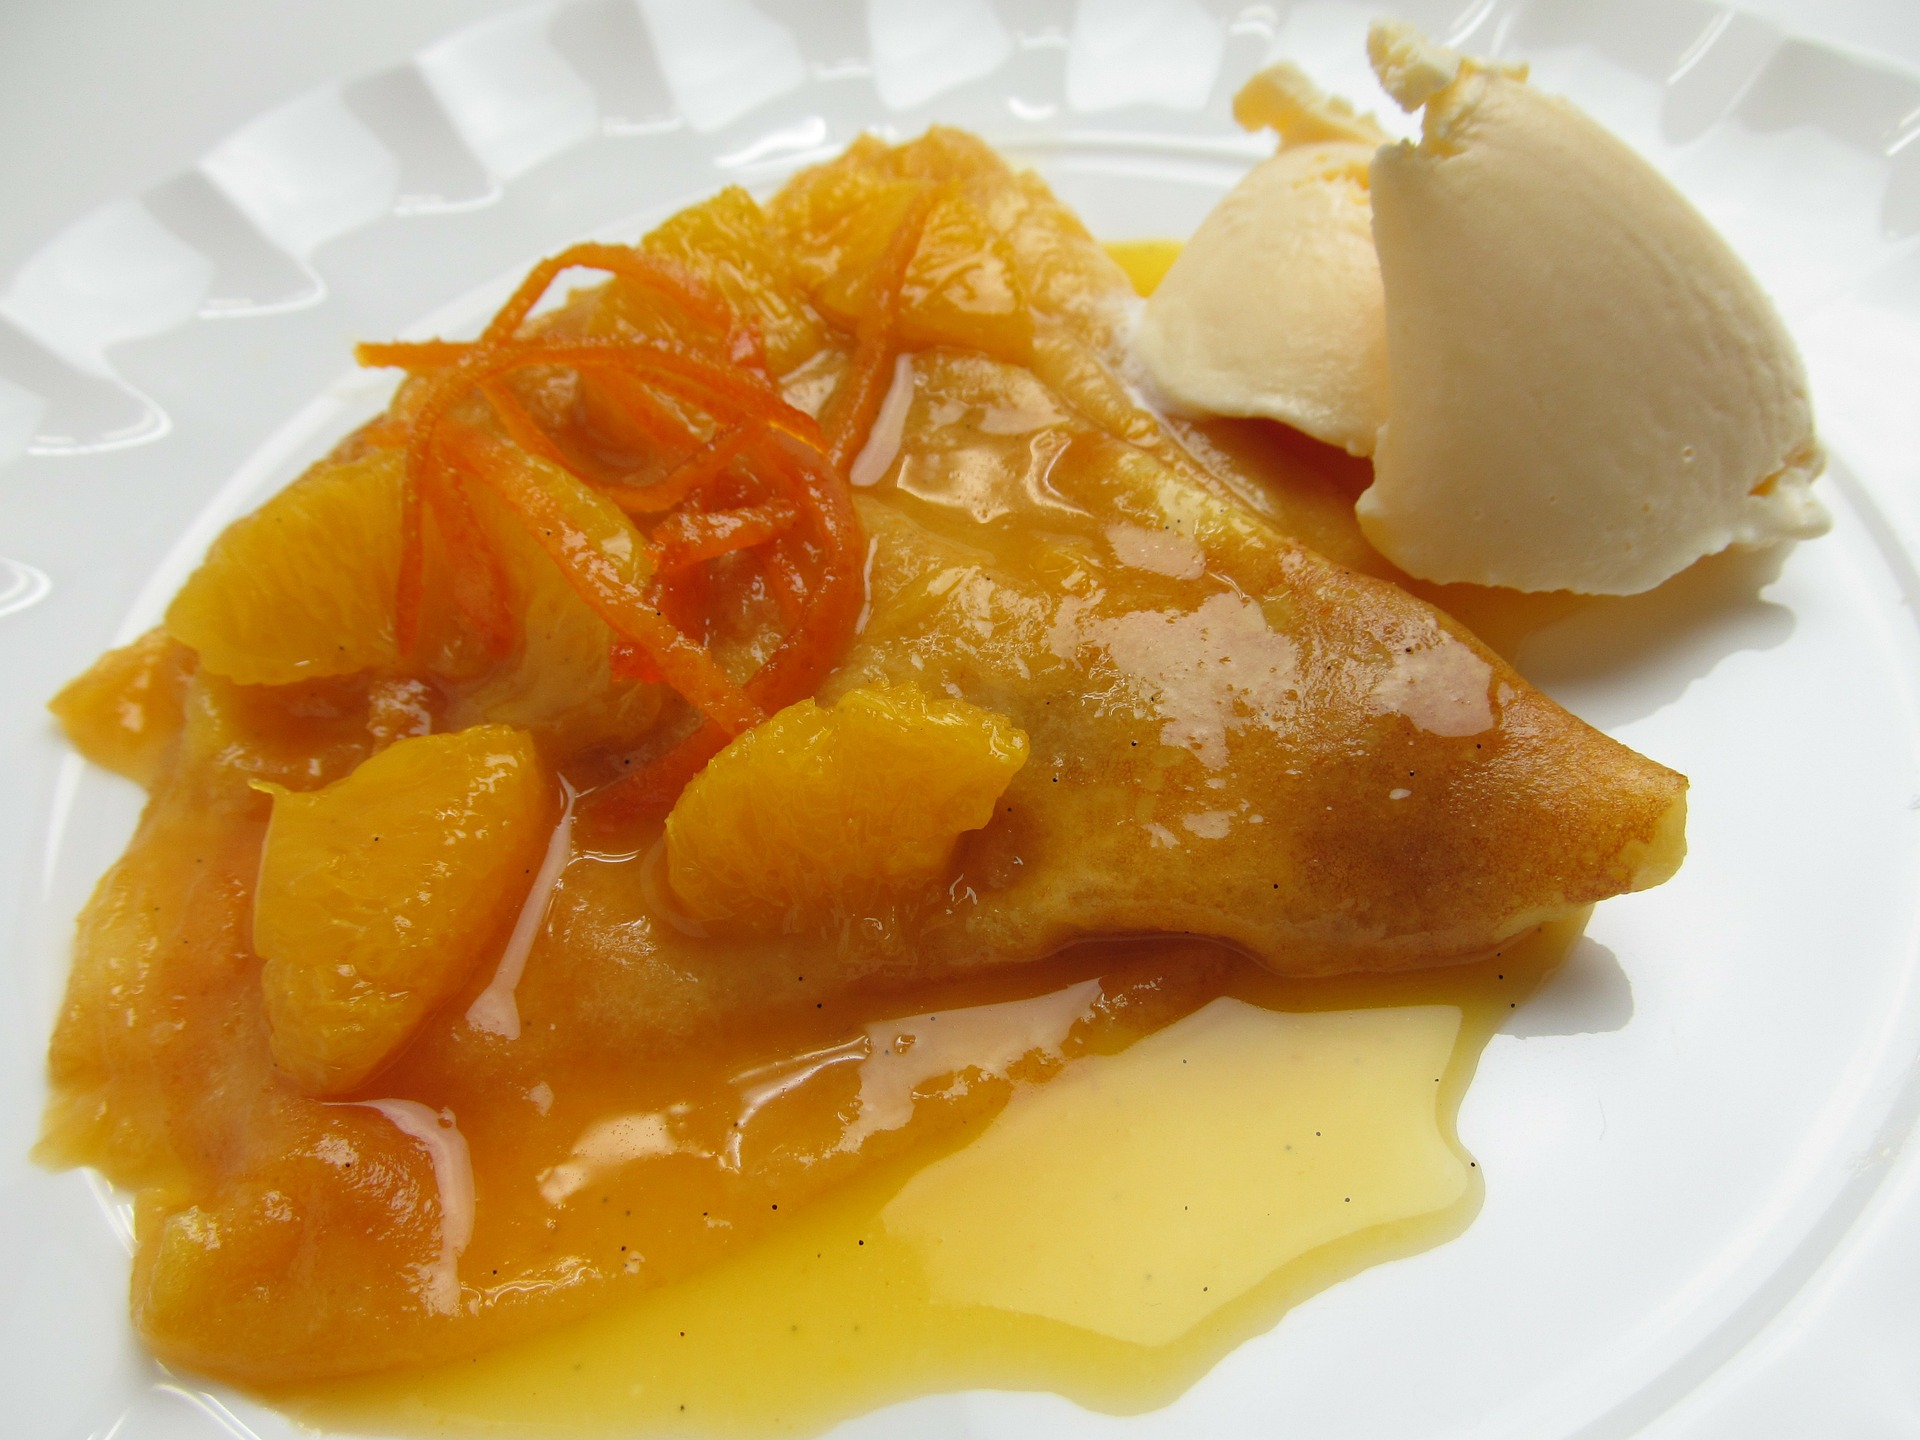 Grand Marnier fruit liqueurs orange crepe suzette French Waterways